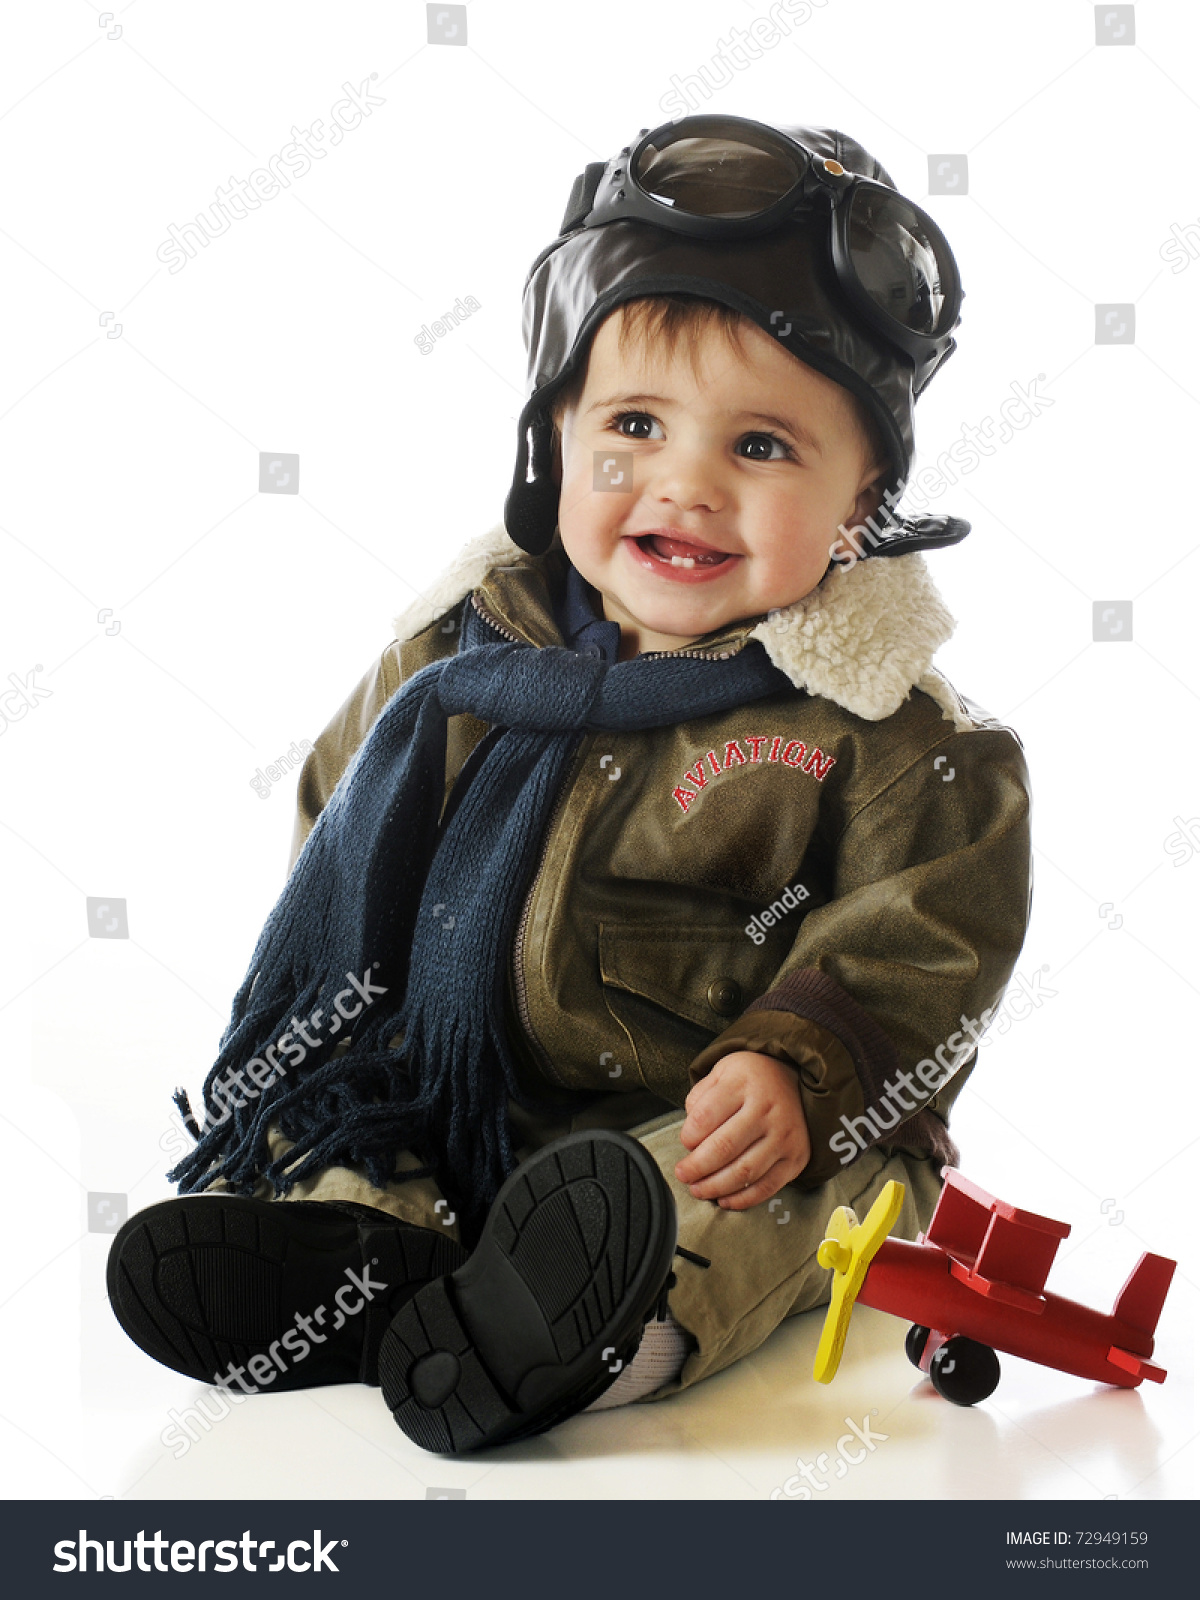 Fashion Toys For Boys : Adorable baby boy oldfashioned pilots outfit stock photo